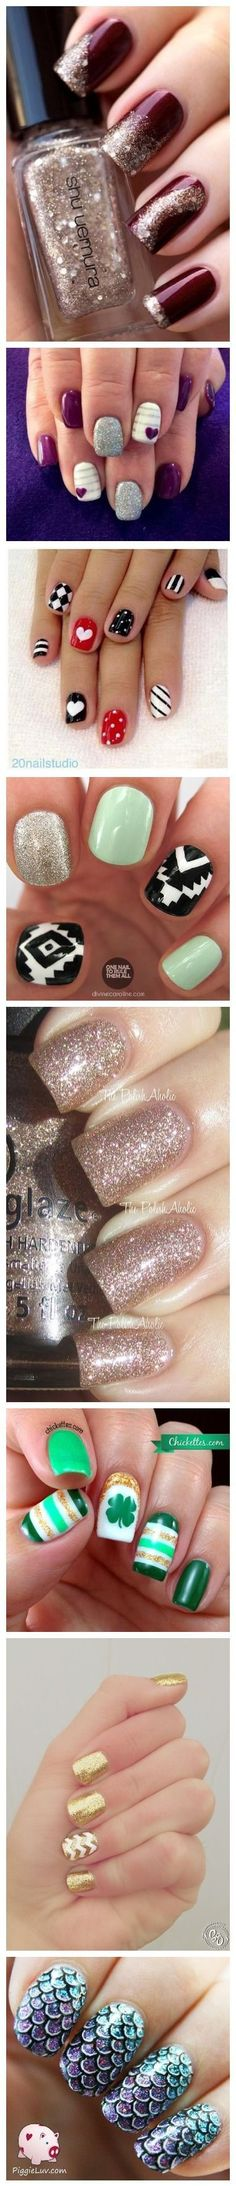 Nail Art Designs - Get Creative Nail Design, Nail Art, Nail Salon, Irvine, Newpo. Nail Art Diy, Easy Nail Art, Diy Nails, Cute Nails, Pretty Nails, Creative Nail Designs, Best Nail Art Designs, Creative Nails, Fabulous Nails